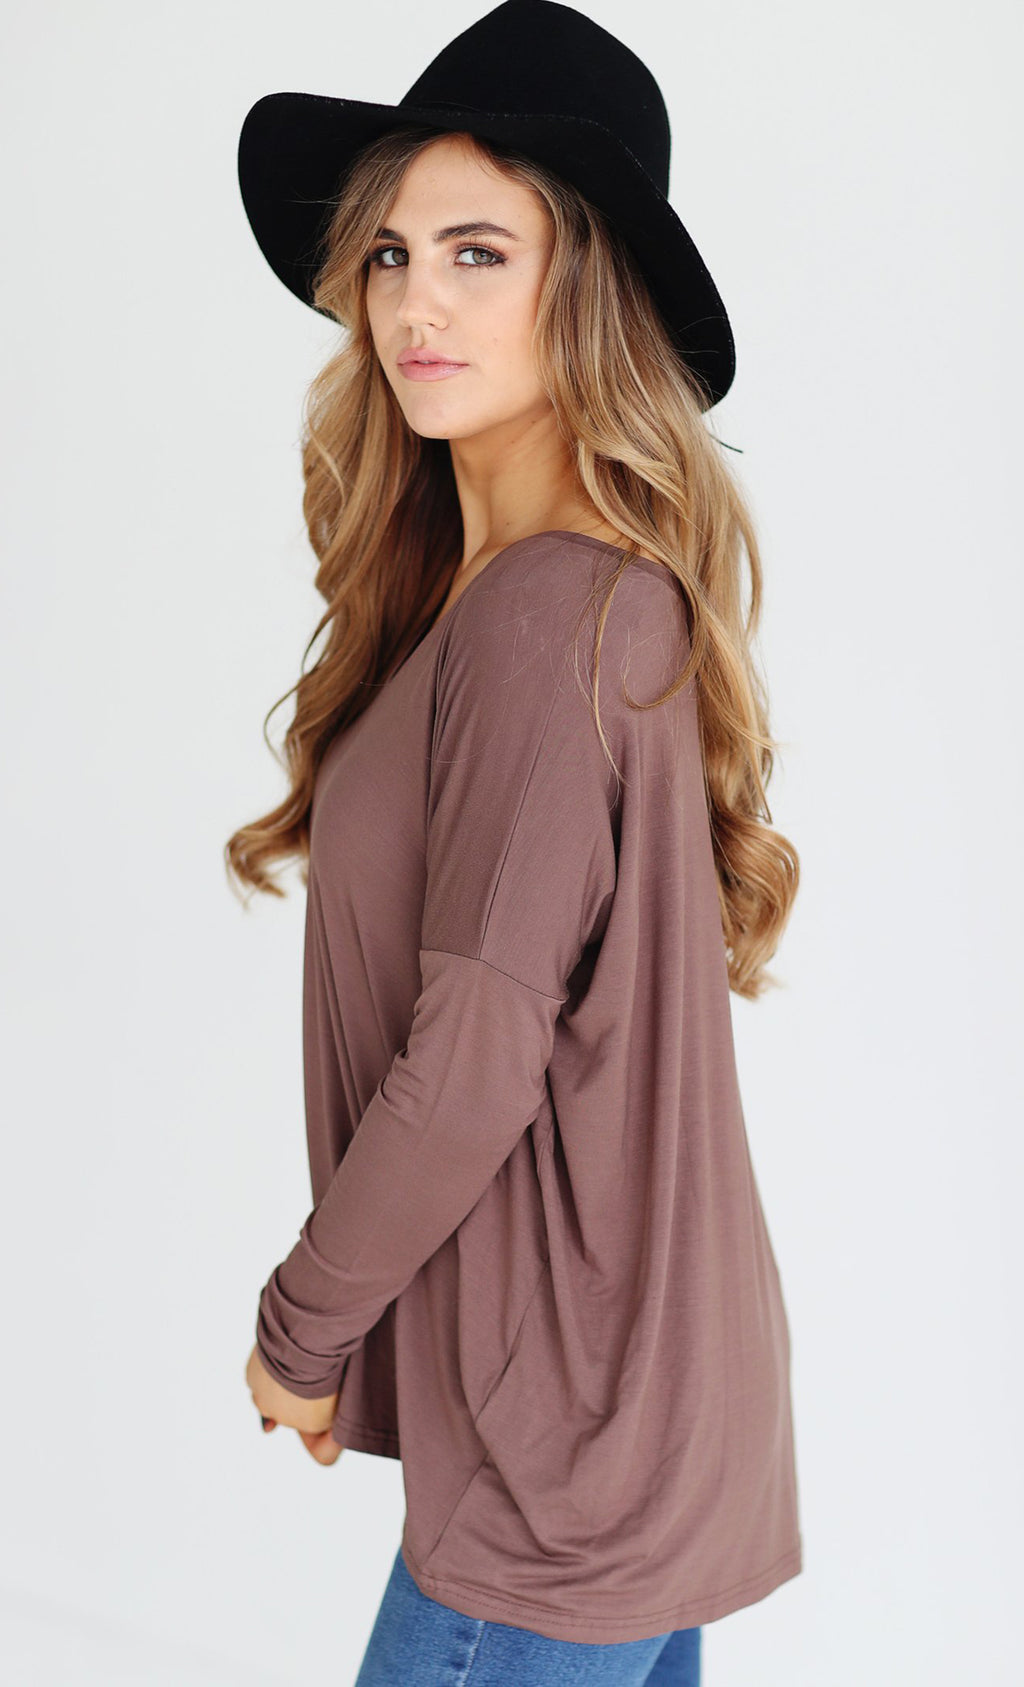 Piko 1988 Cocoa Medium Brown Long Dolman Sleeve V Neck Piko Bamboo Basic Loose Tunic Tee Top